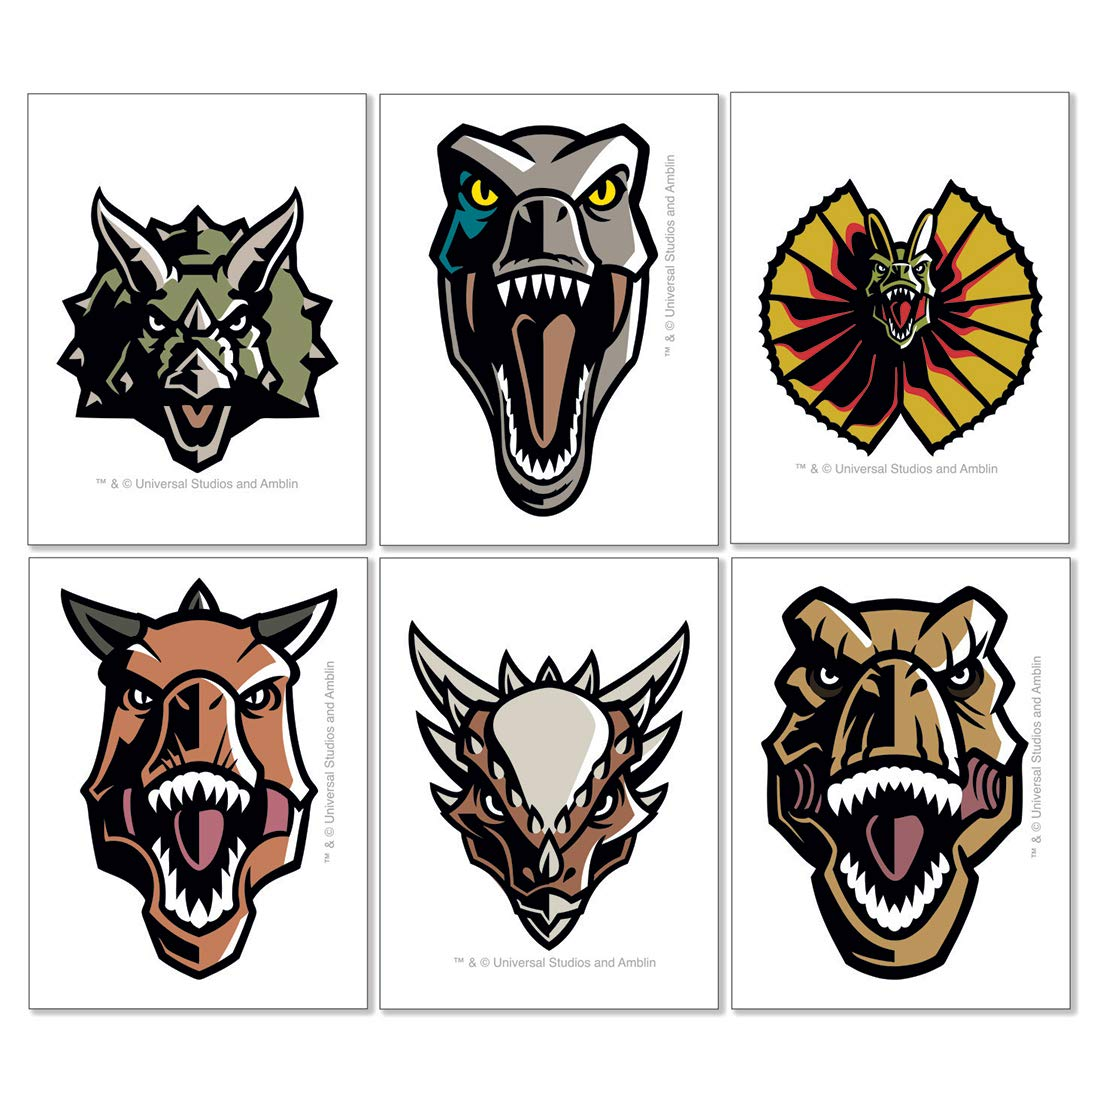 Jurassic World Temporary Tattoos - Prizes and Giveaways - 144 per Pack